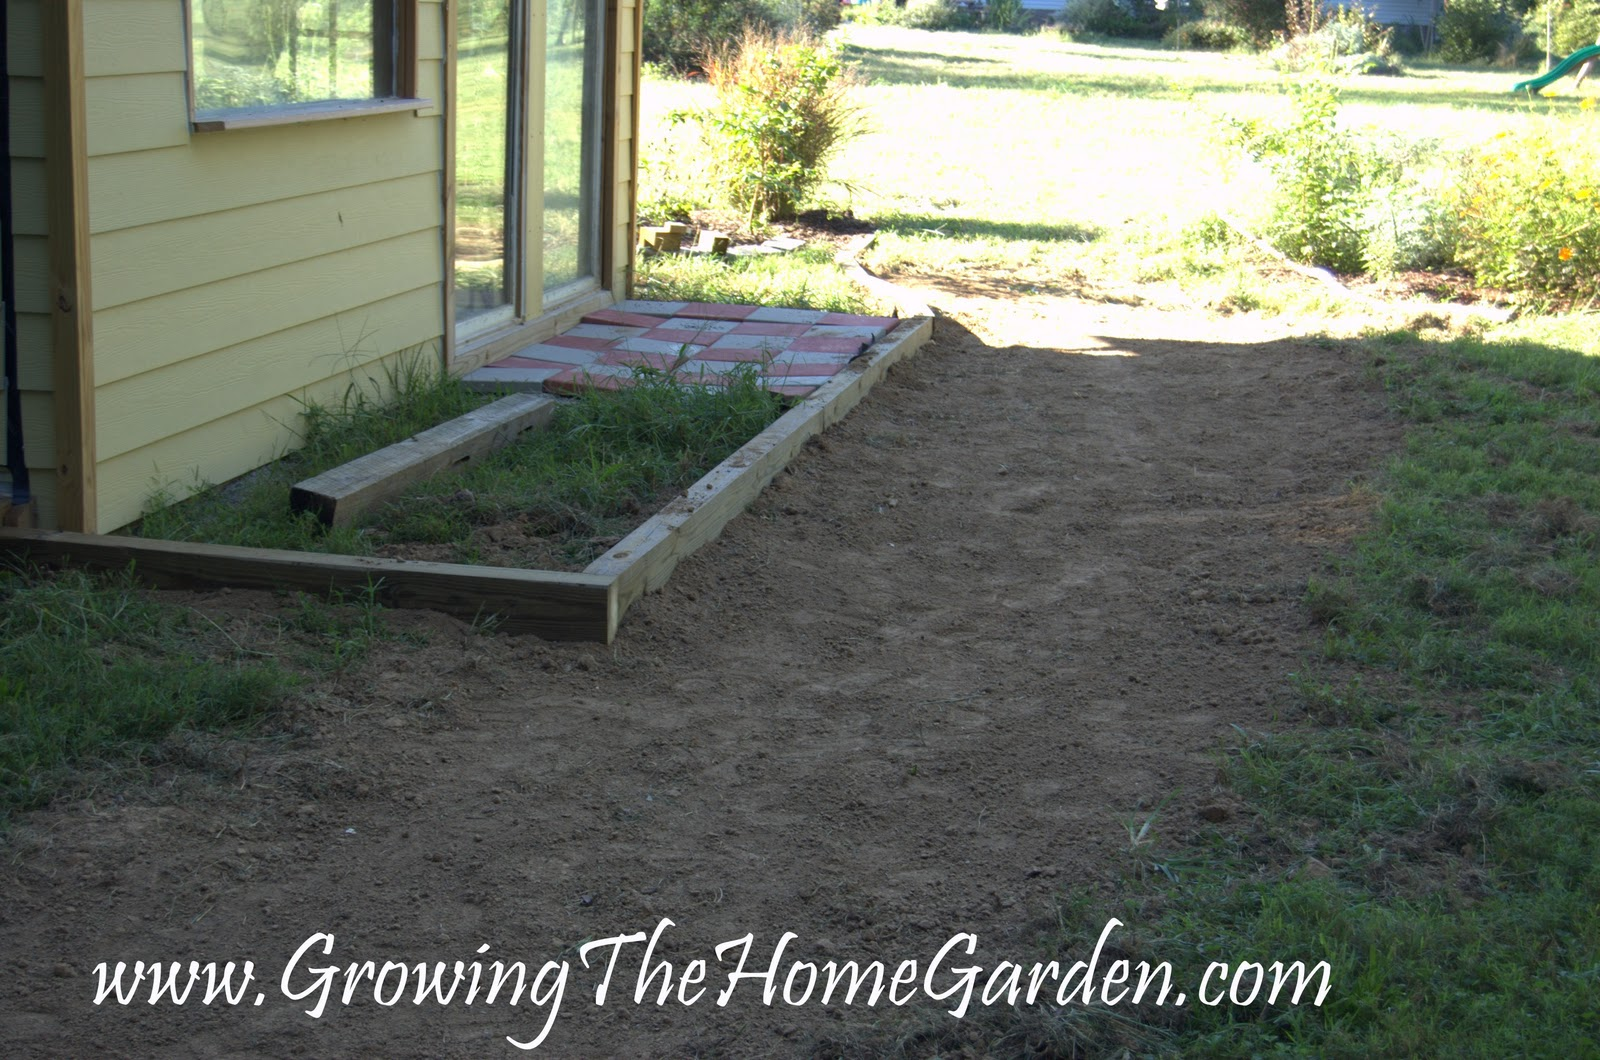 Garden Shed Drainage Pathway And Loads Of Dirt Growing